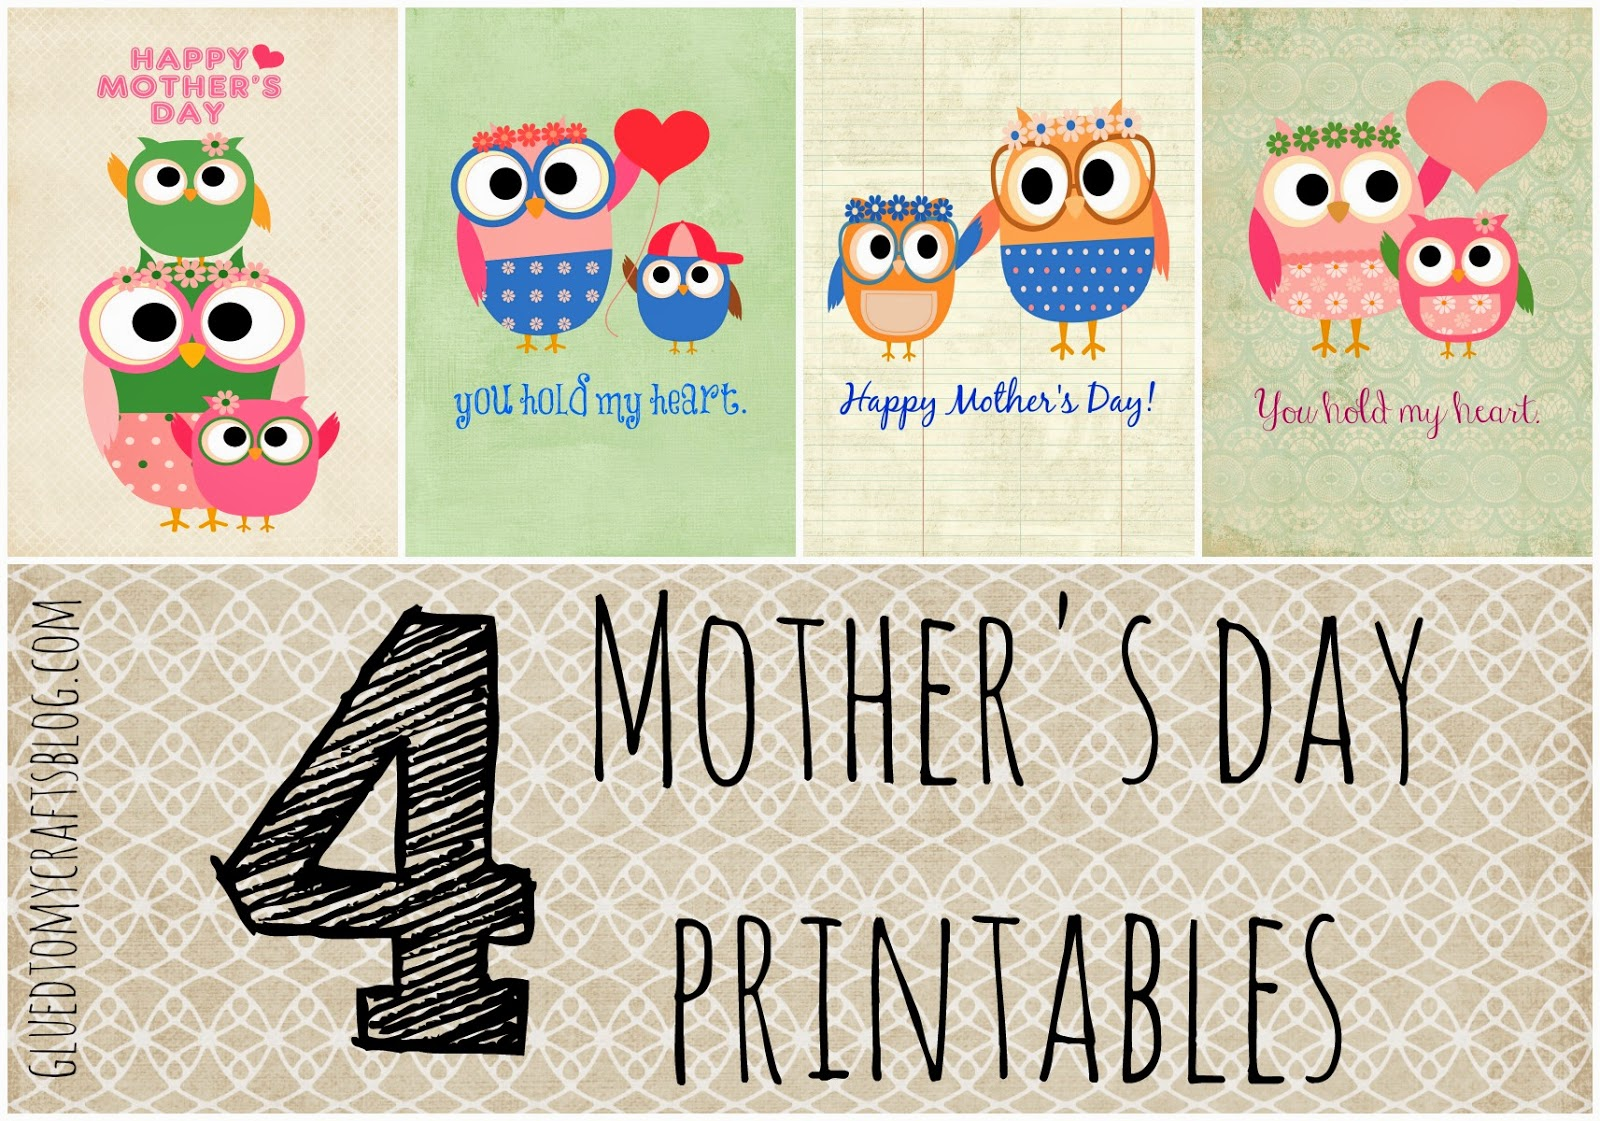 photograph regarding Free Printable Mothers Day Cards for Wife called No cost Printable Moms Working day Playing cards (PDF) Cisdem